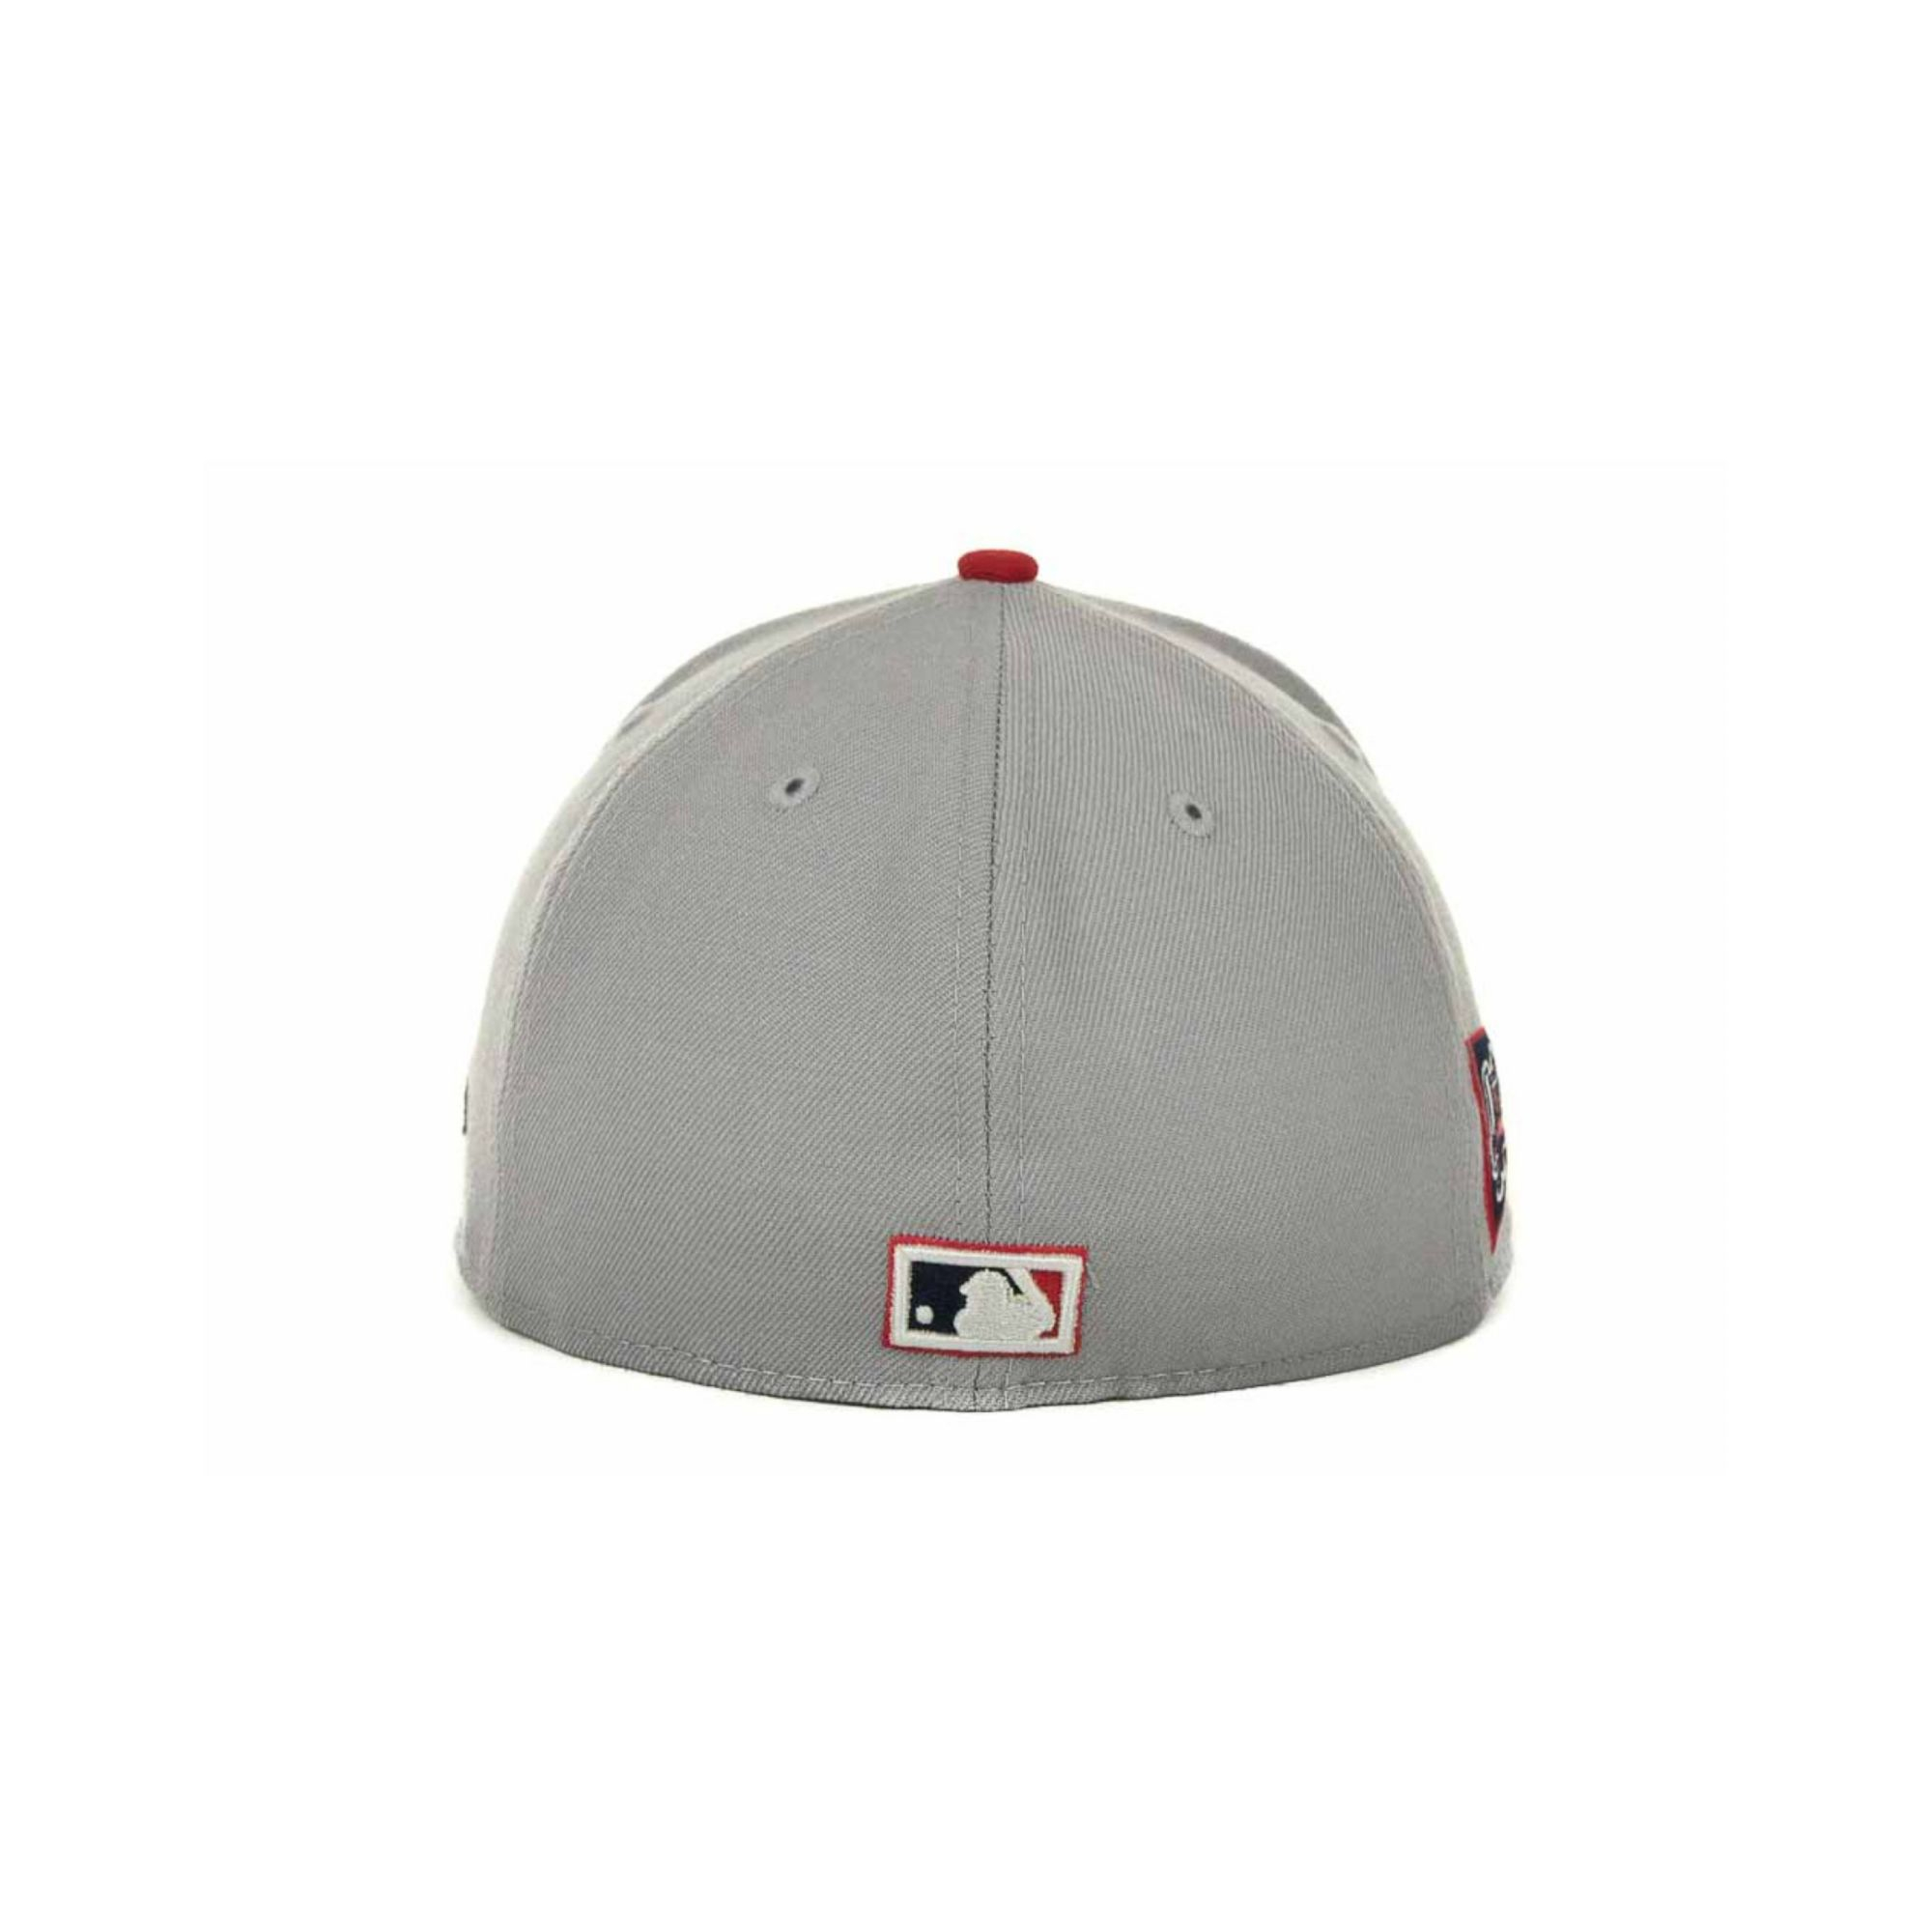 finest selection b2205 4a6a8 ... lyst ktz boston red sox cooperstown patch 59fifty cap in gray for men